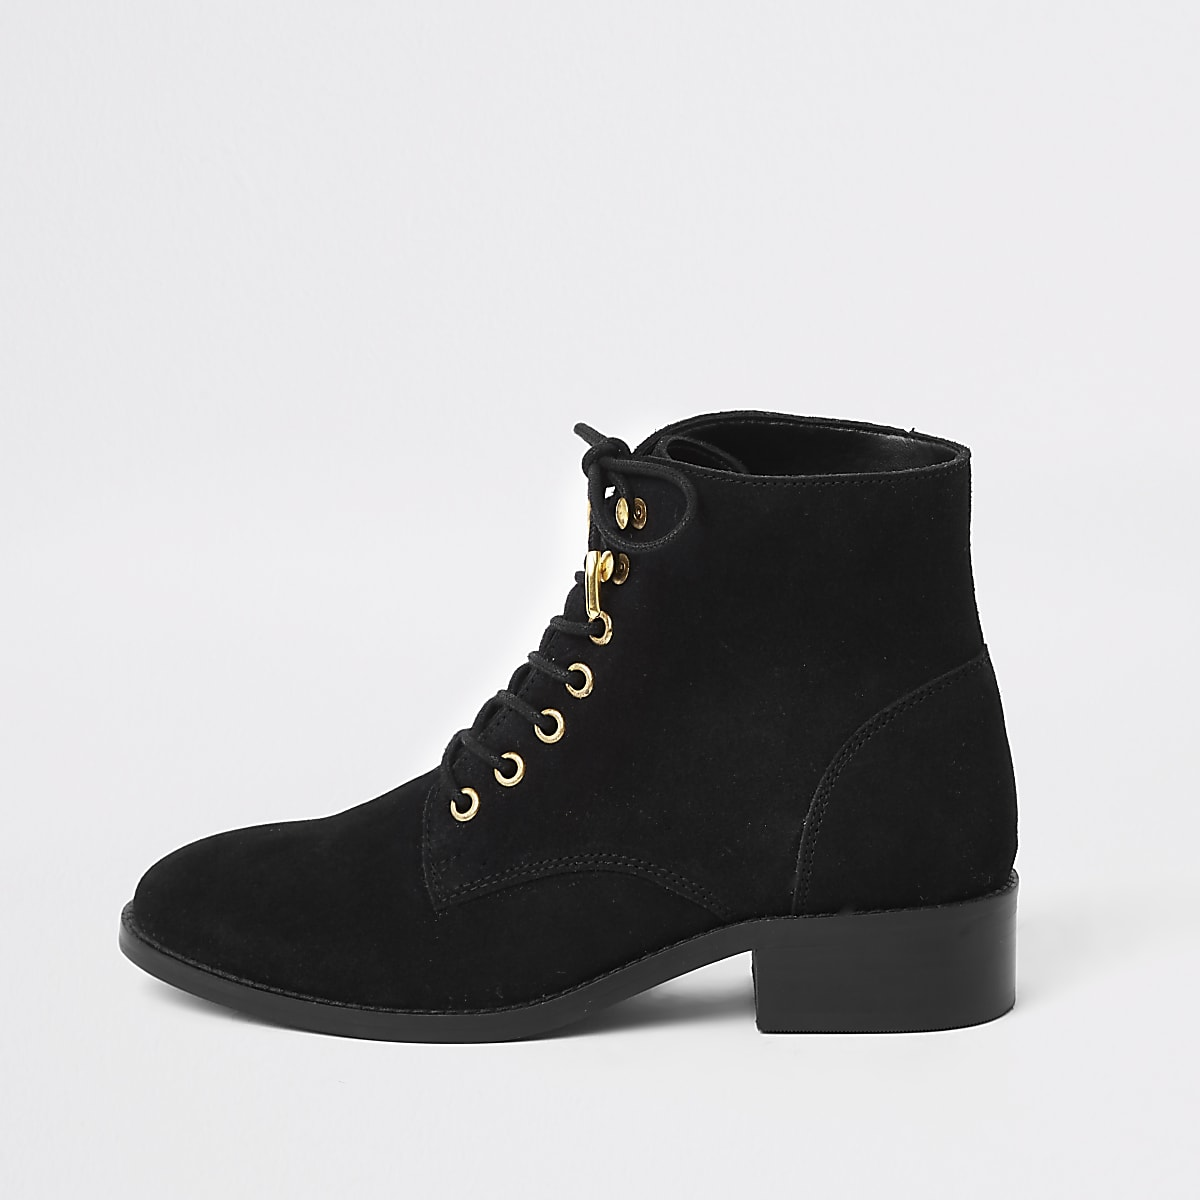 fb3a9e611df5 Black suede lace up ankle boots - Winter Warmers - women